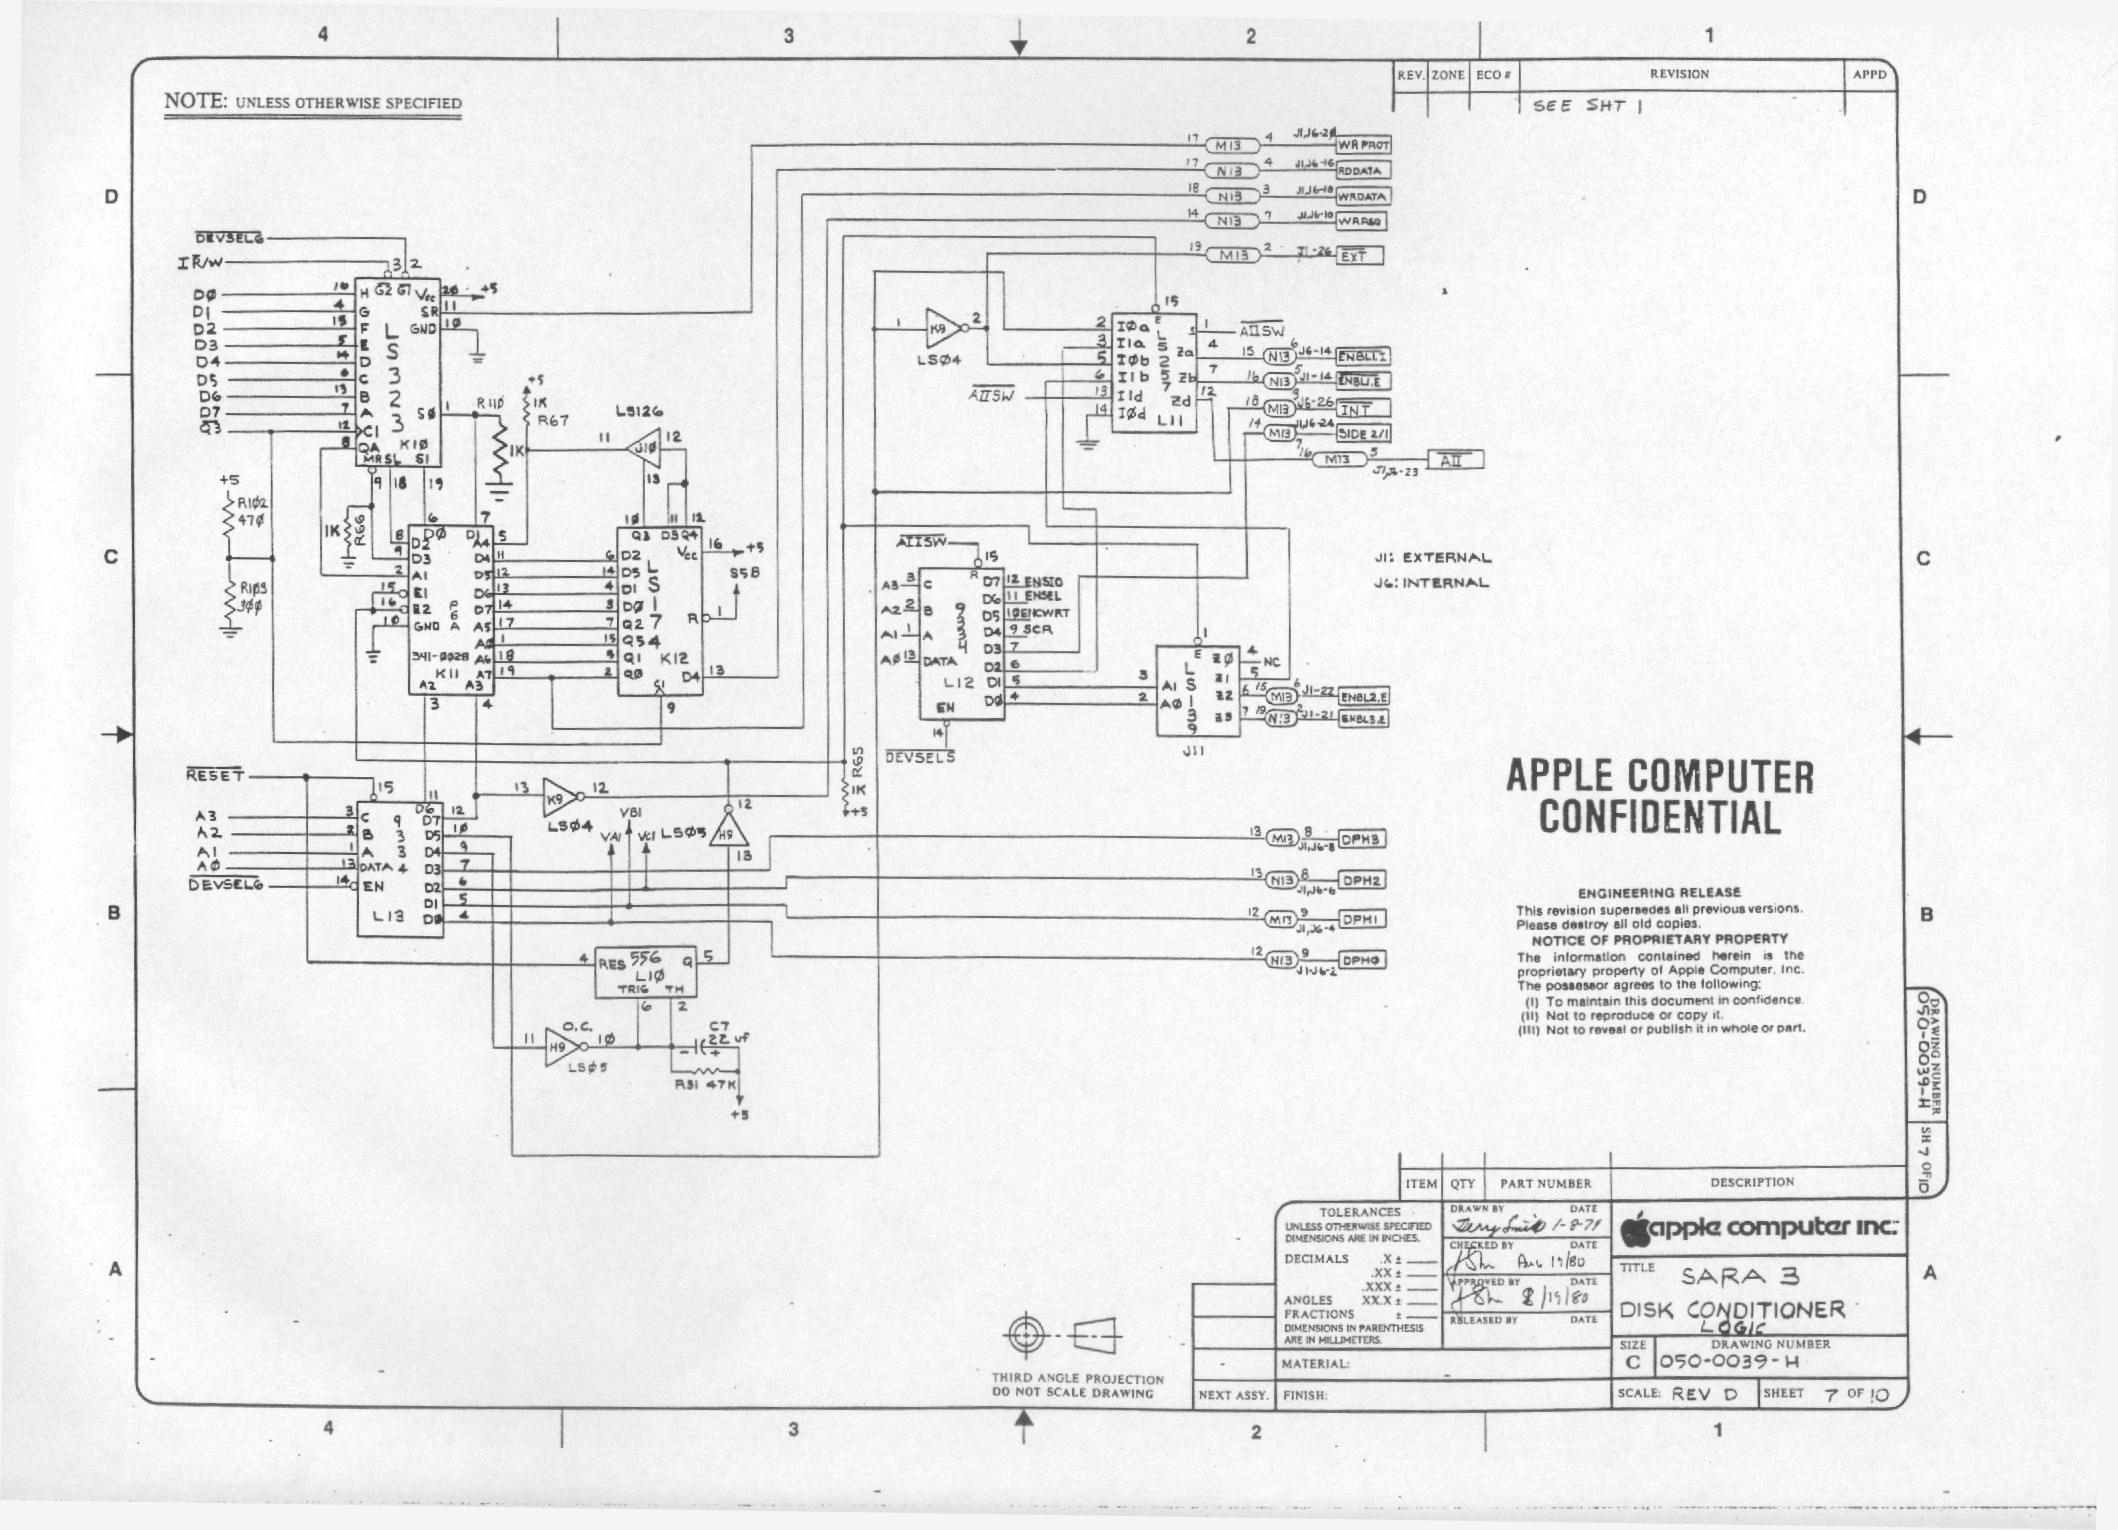 Disk Controller Logic apple 2 schematic readingrat net wiring diagram for apple tv at honlapkeszites.co